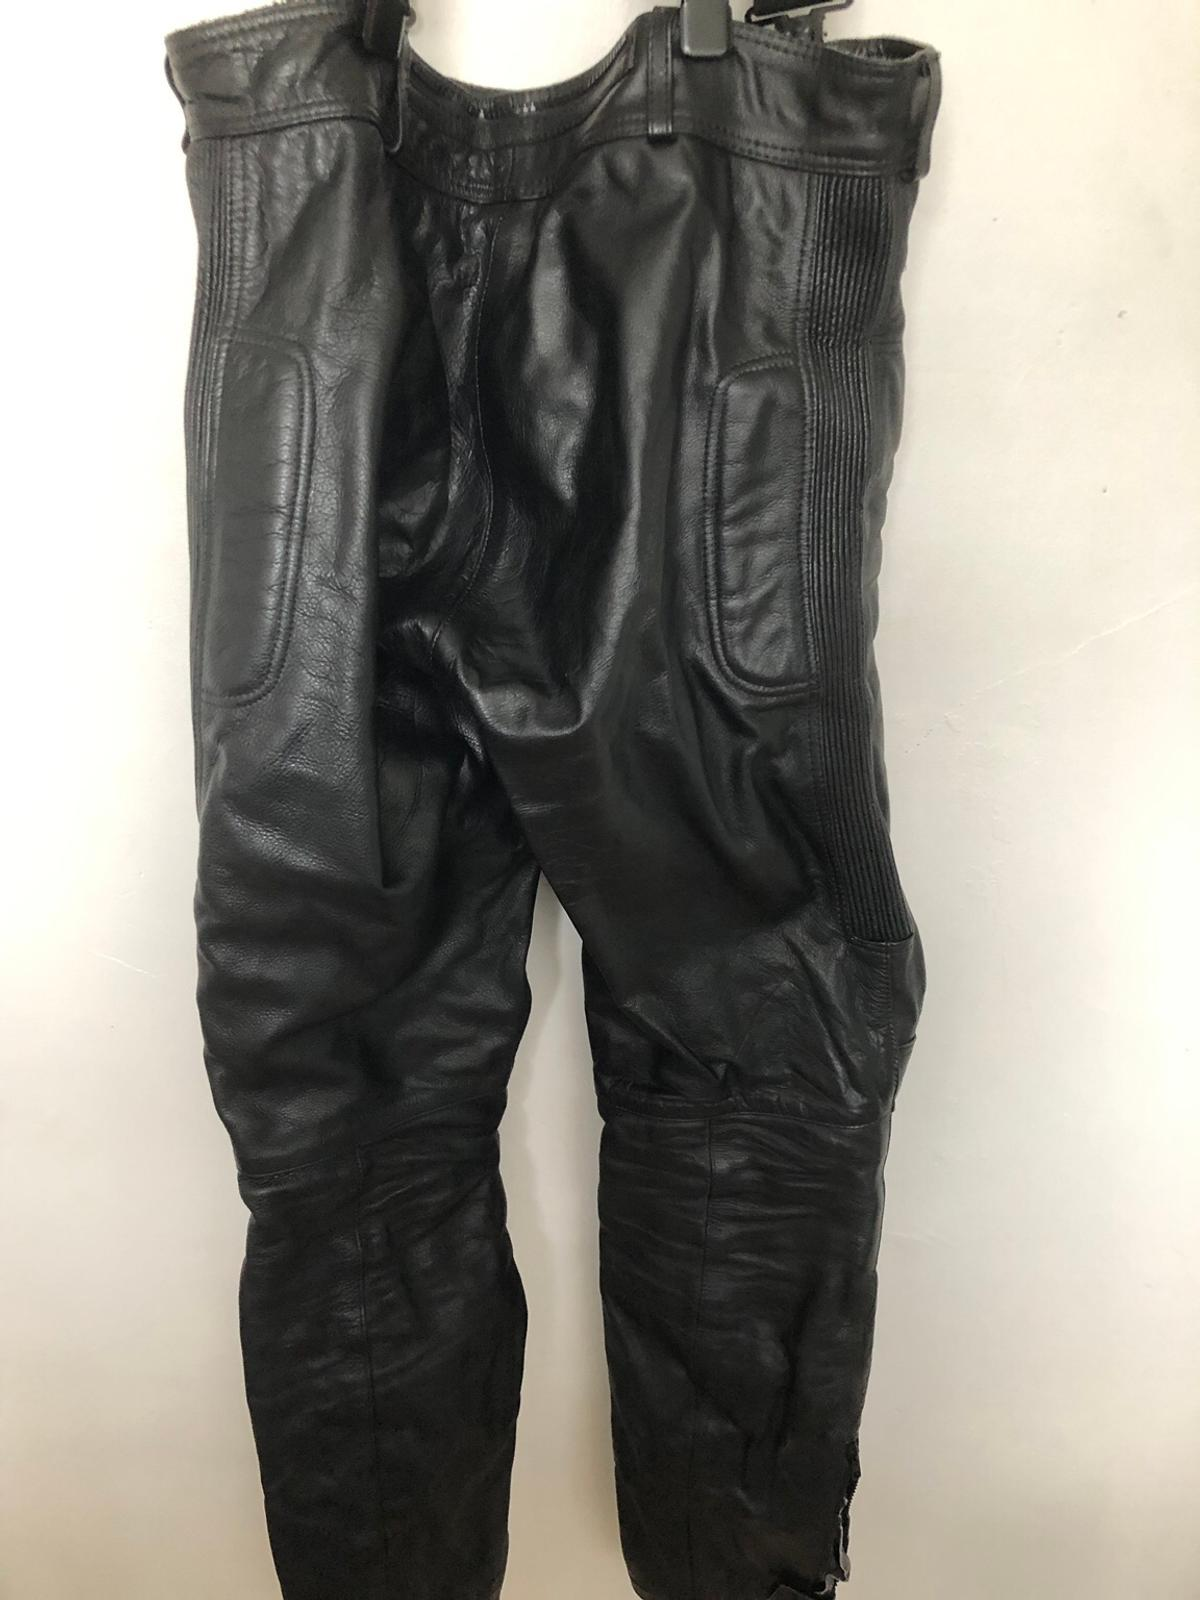 Huge Size Range Texpeed Mens Leather Motorcycle Touring Jeans//Trousers With Armour